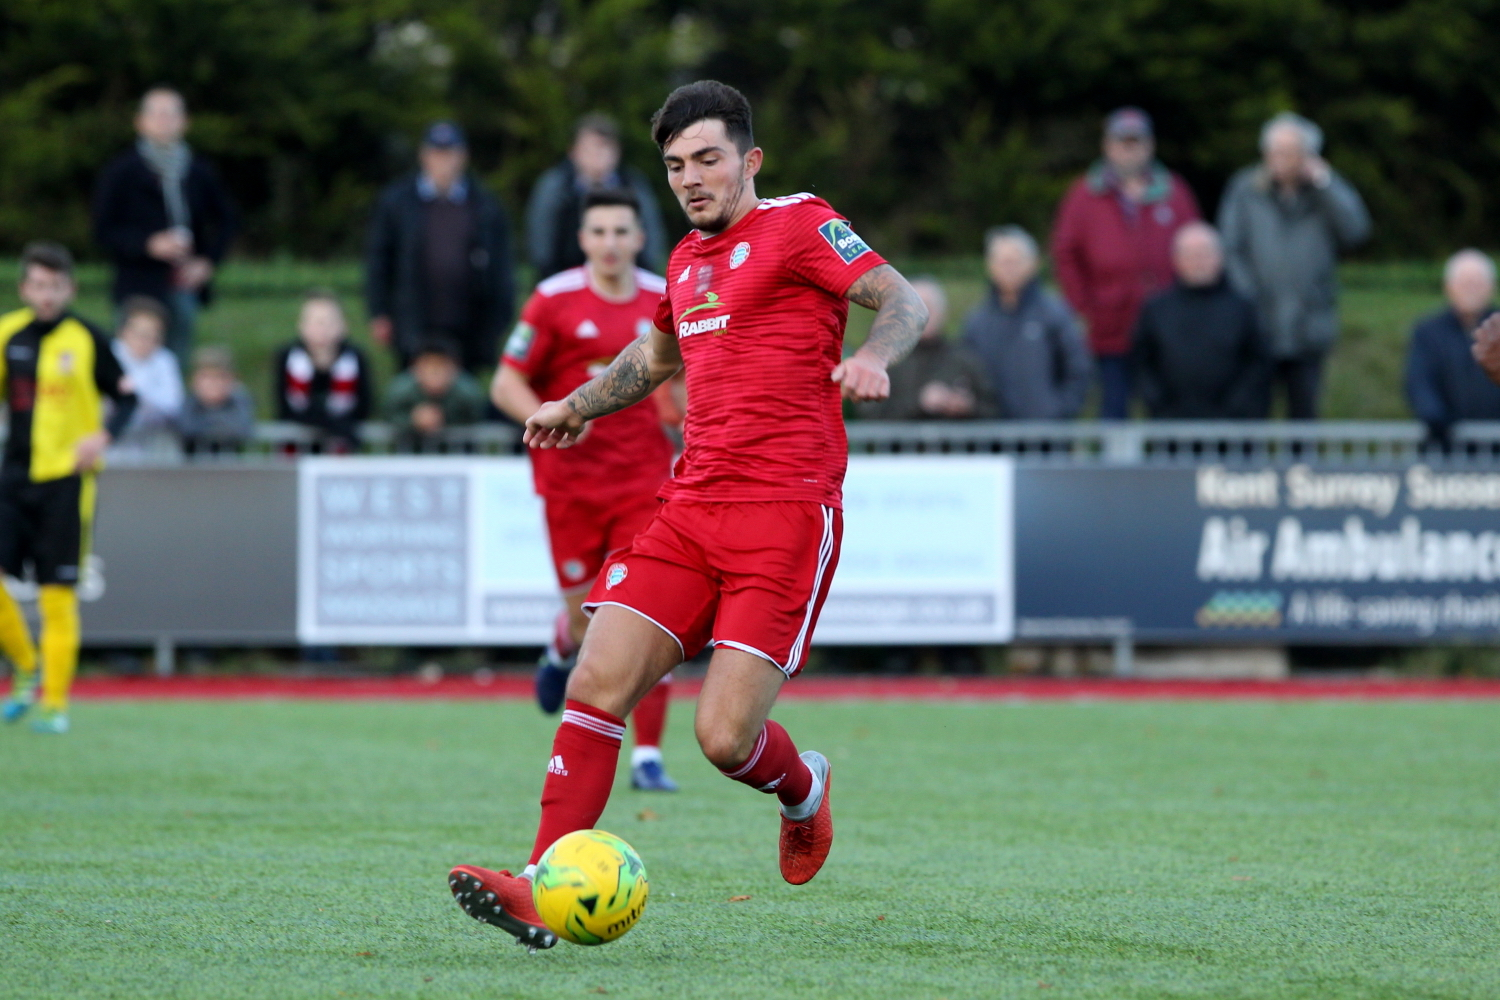 Read the full article - HIGHLIGHTS: Enfield Town 1-4 Worthing [A] – League